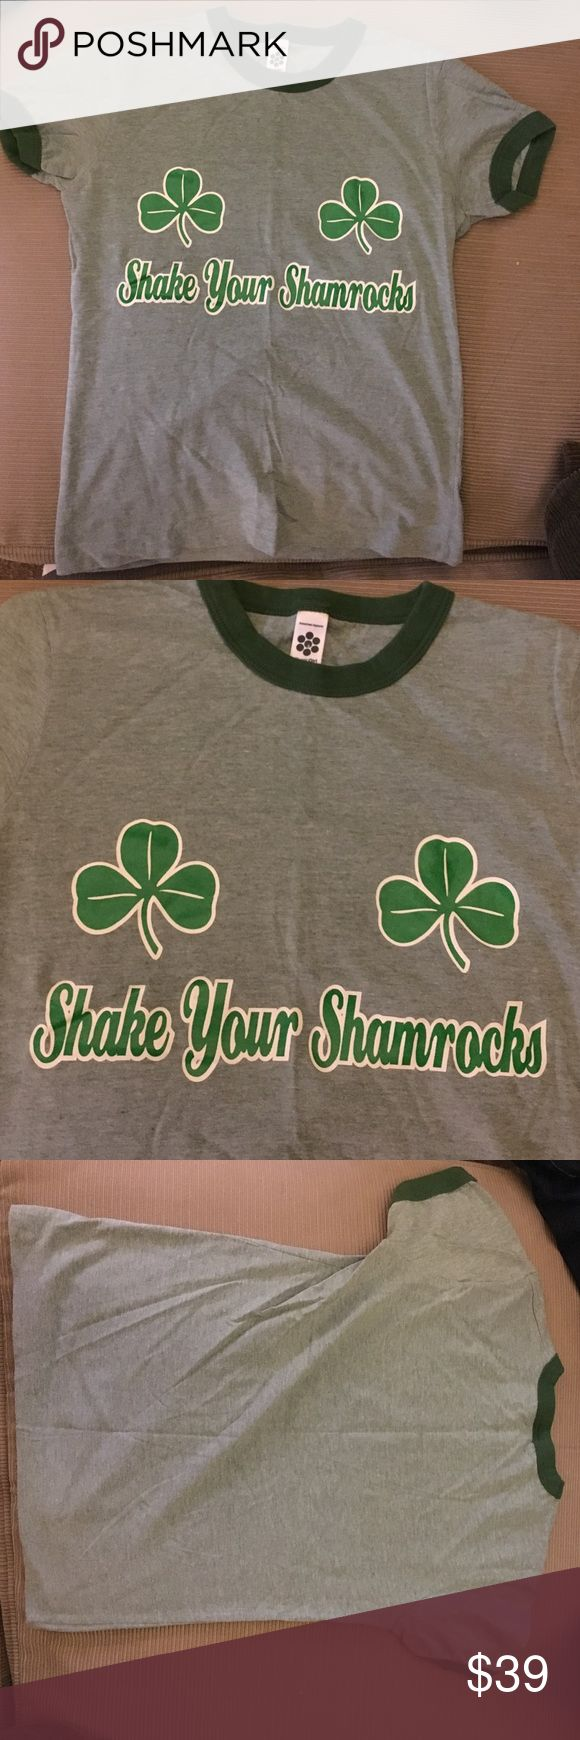 "☘️American Apparel ""Shake Your Shamrocks"" Tshirt☘️ Very rare American Apparel. Approximately 20.5 inches long.  Fits more like an XS.  Worn once.  Fabulous for St. Patrick's Day! American Apparel Tops Tees - Short Sleeve"